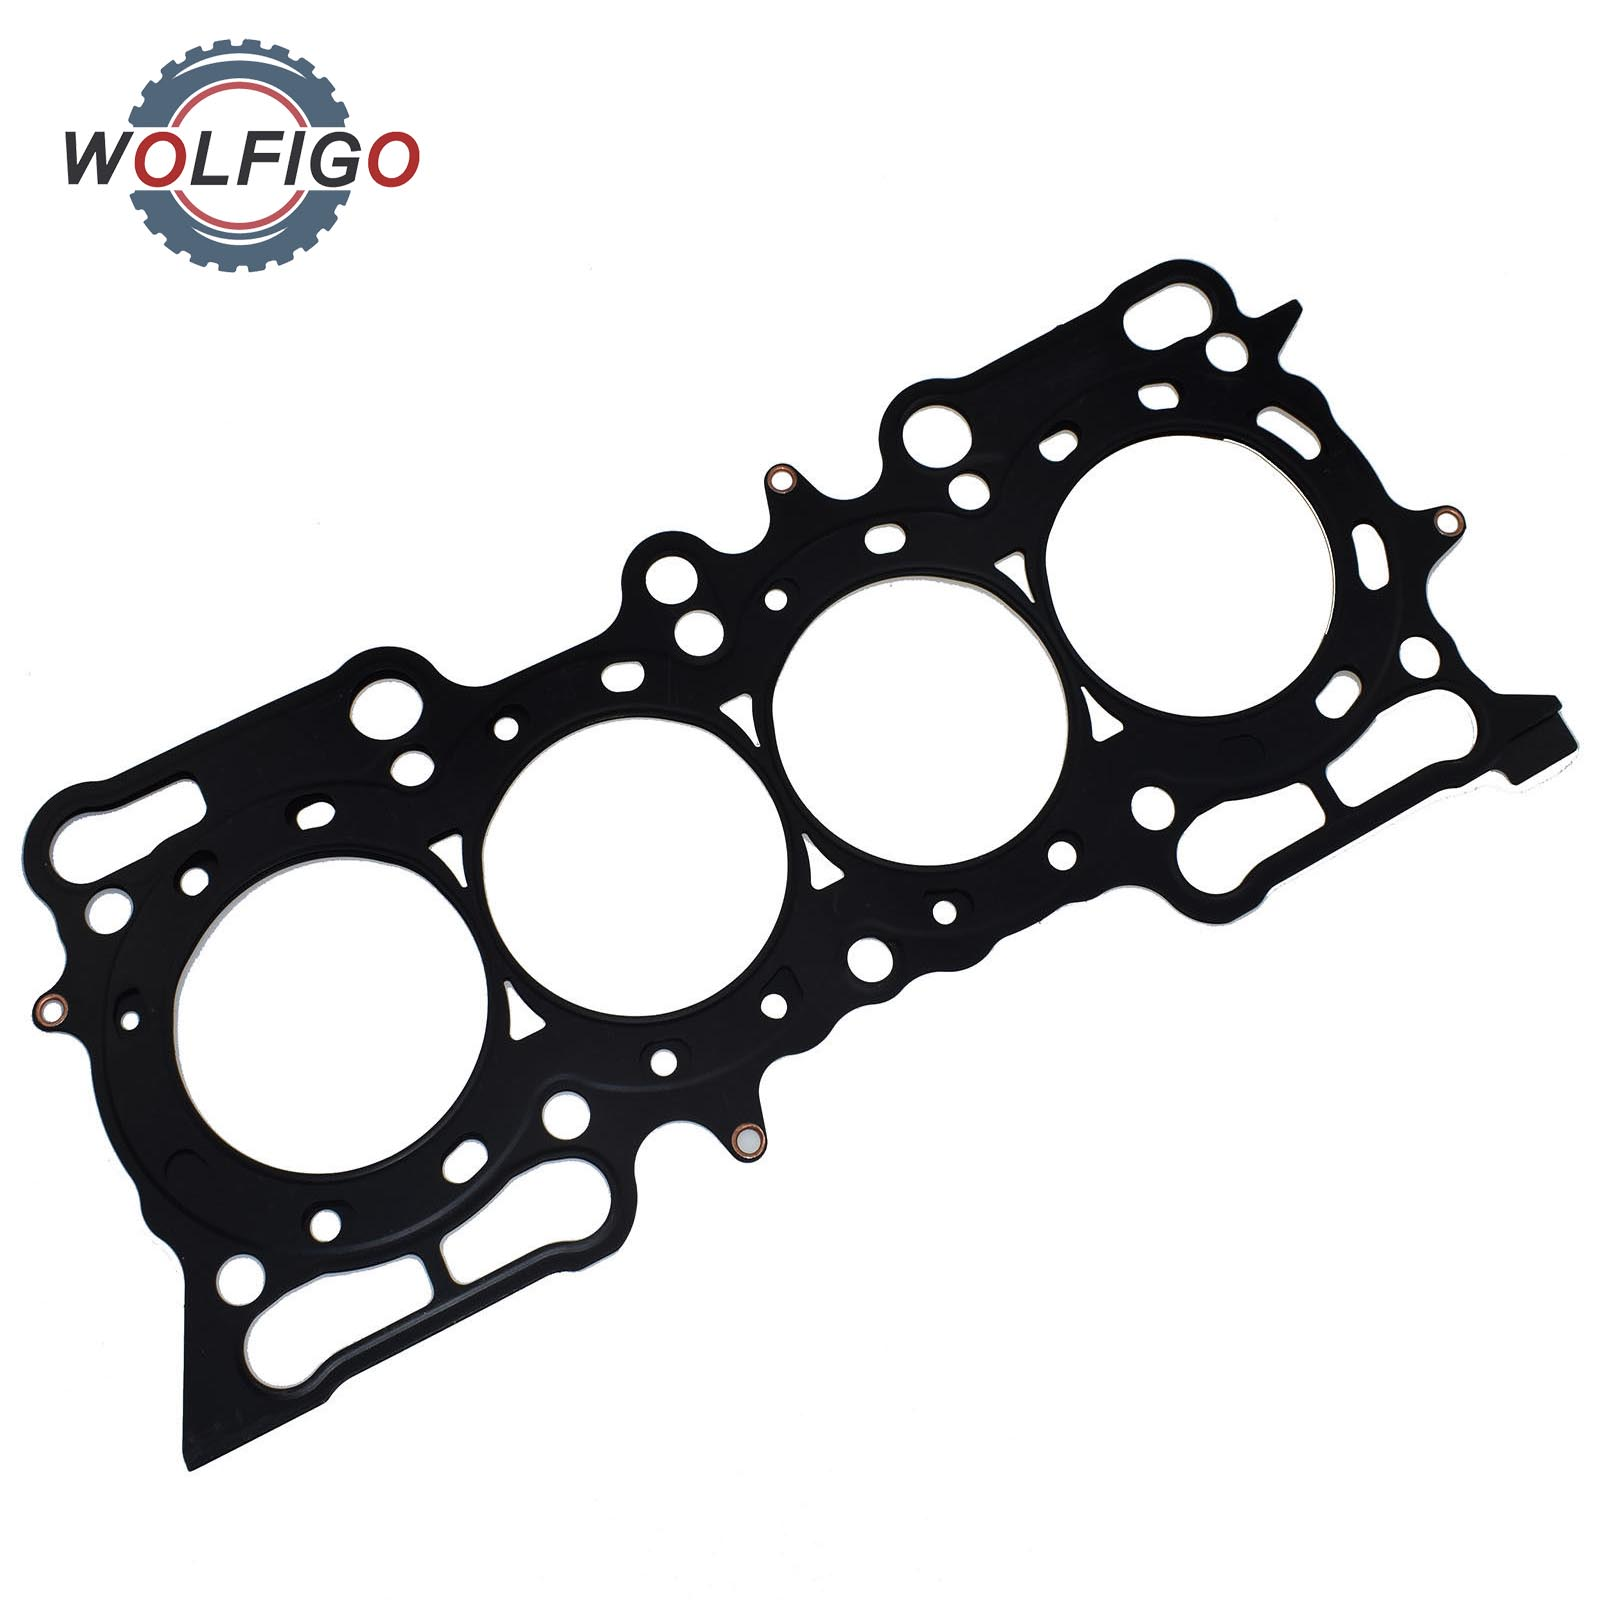 Wolfigo engine cylinder head gasket 26411pt for honda prelude 2 2l 16v l4 1997 1998 1999